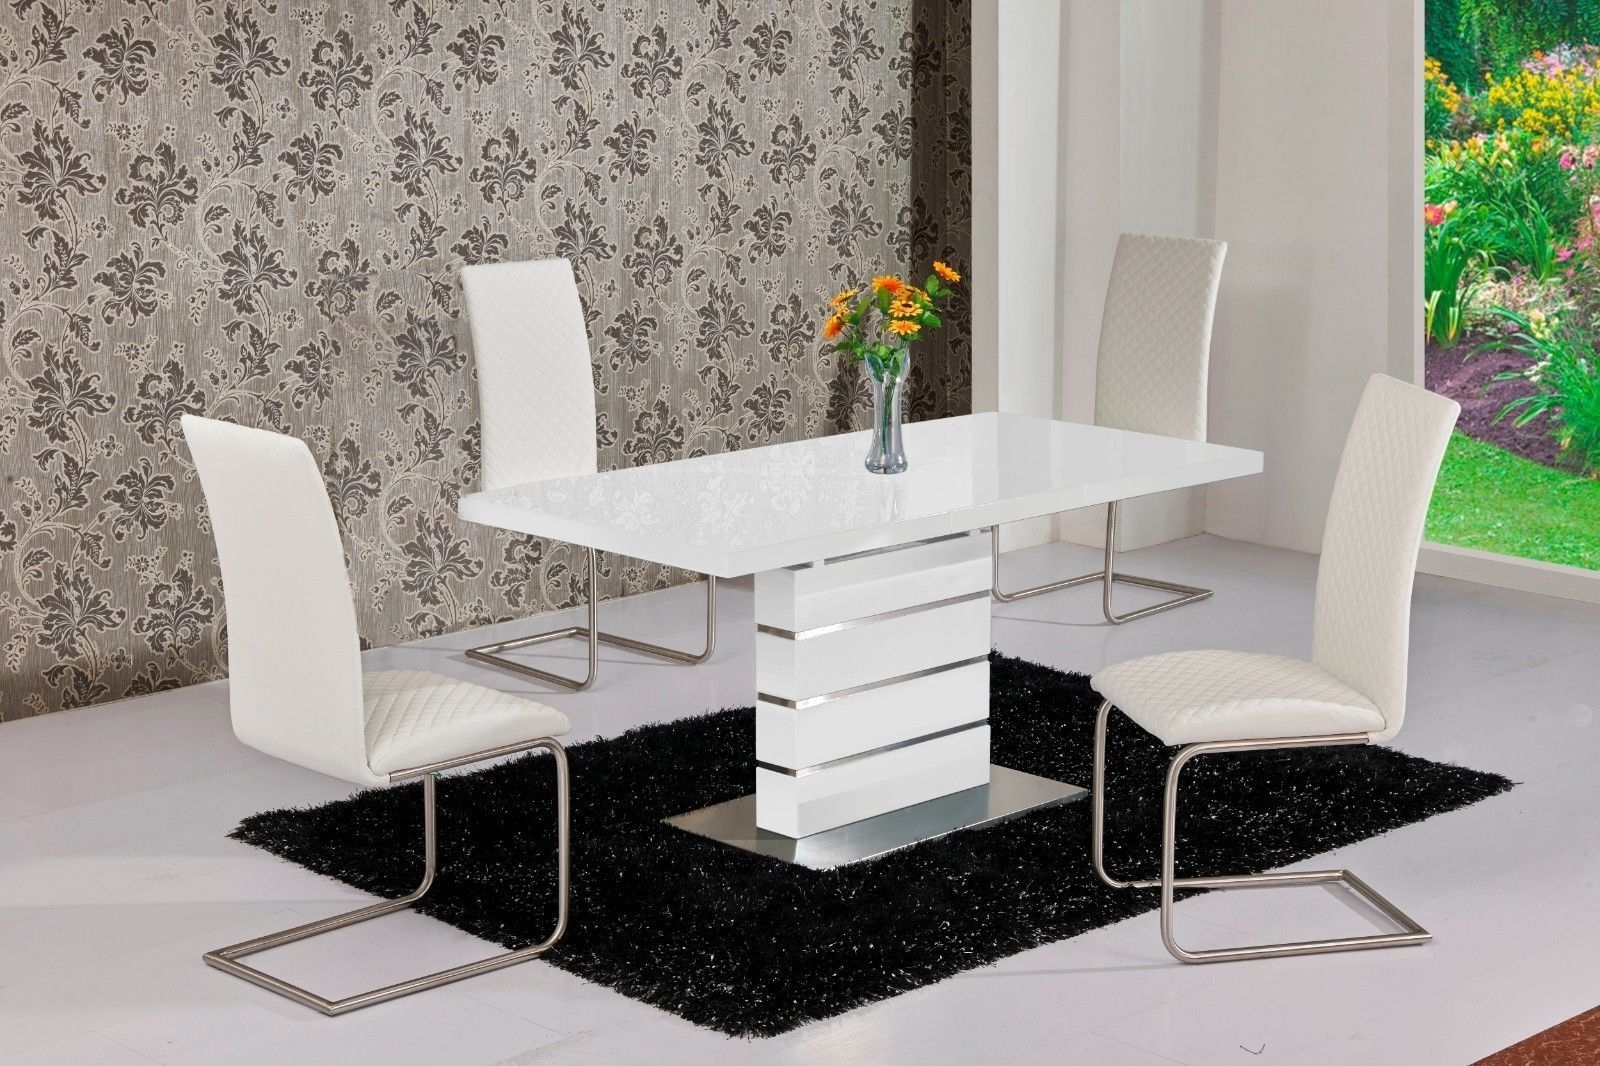 Mace High Gloss Extending 120 160 Dining Table & Chair Set – White Intended For Current Dining Table Chair Sets (View 18 of 25)